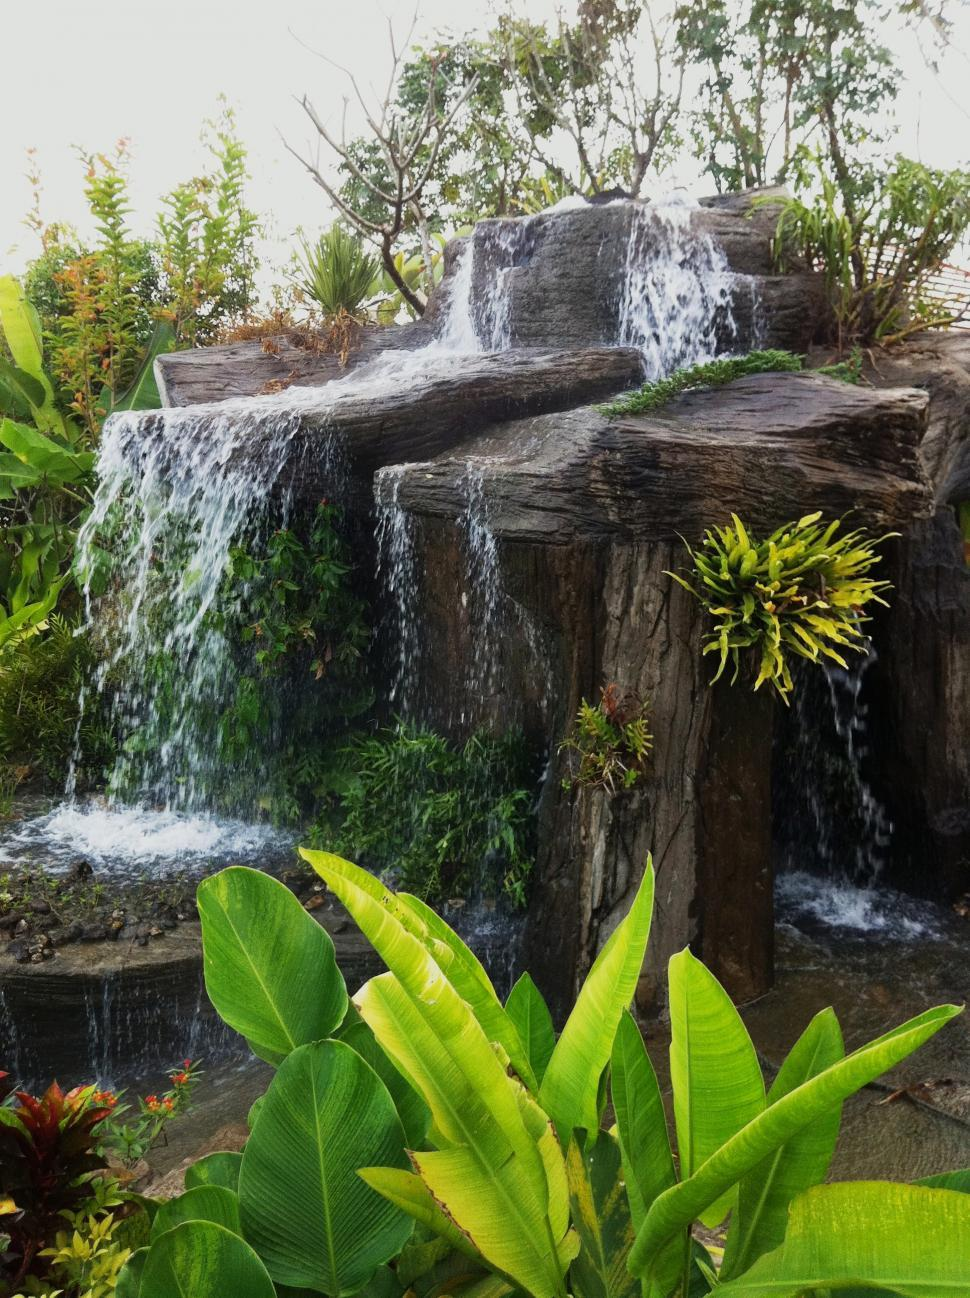 Download Free Stock HD Photo of Tropical Garden Waterfall Feature Online